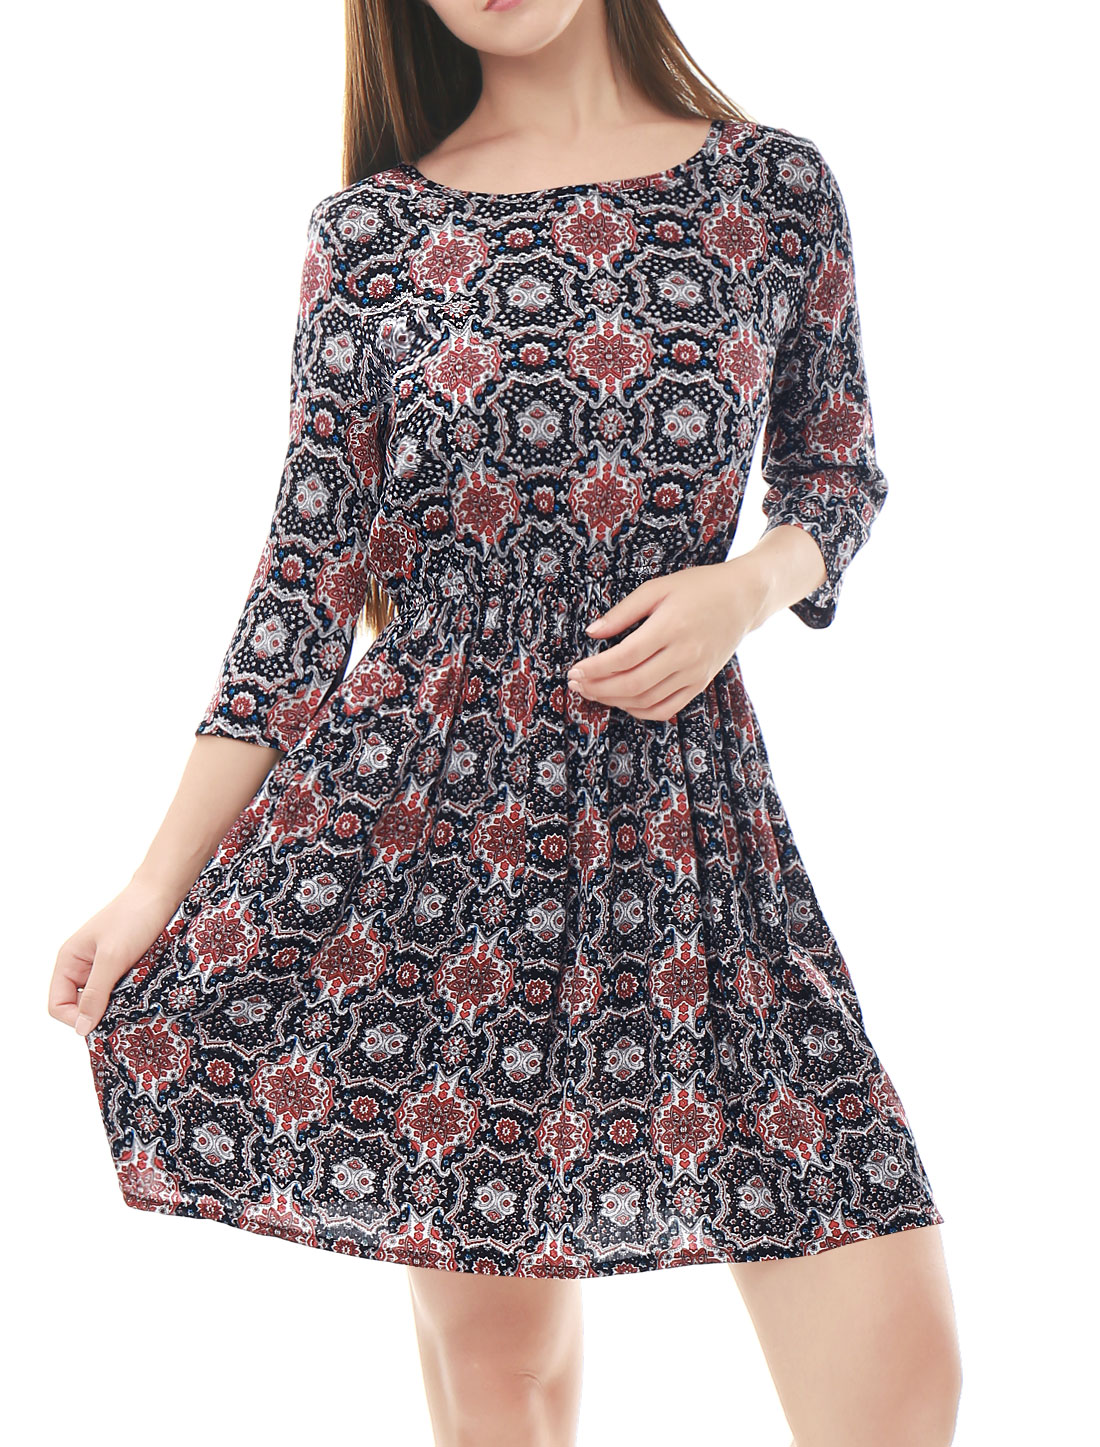 Woman Floral Prints 3/4 Sleeves Elastic Waist A Line Dress Black S